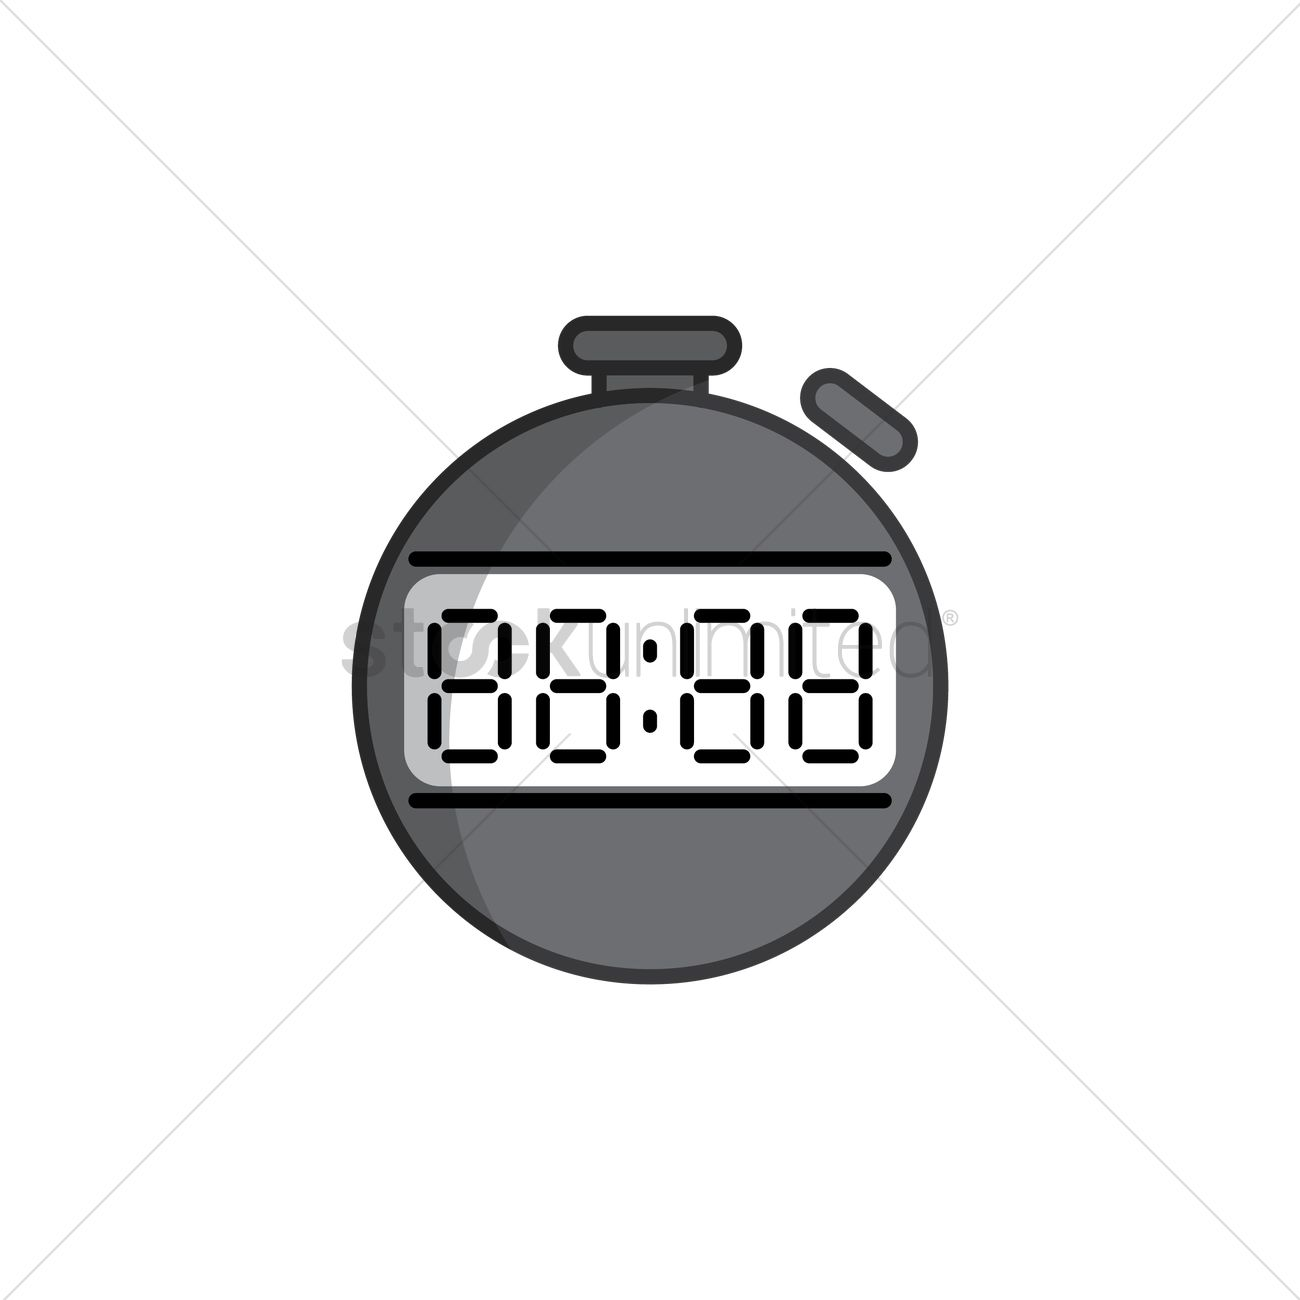 Digital stopwatch Vector Image - 2021907 | StockUnlimited